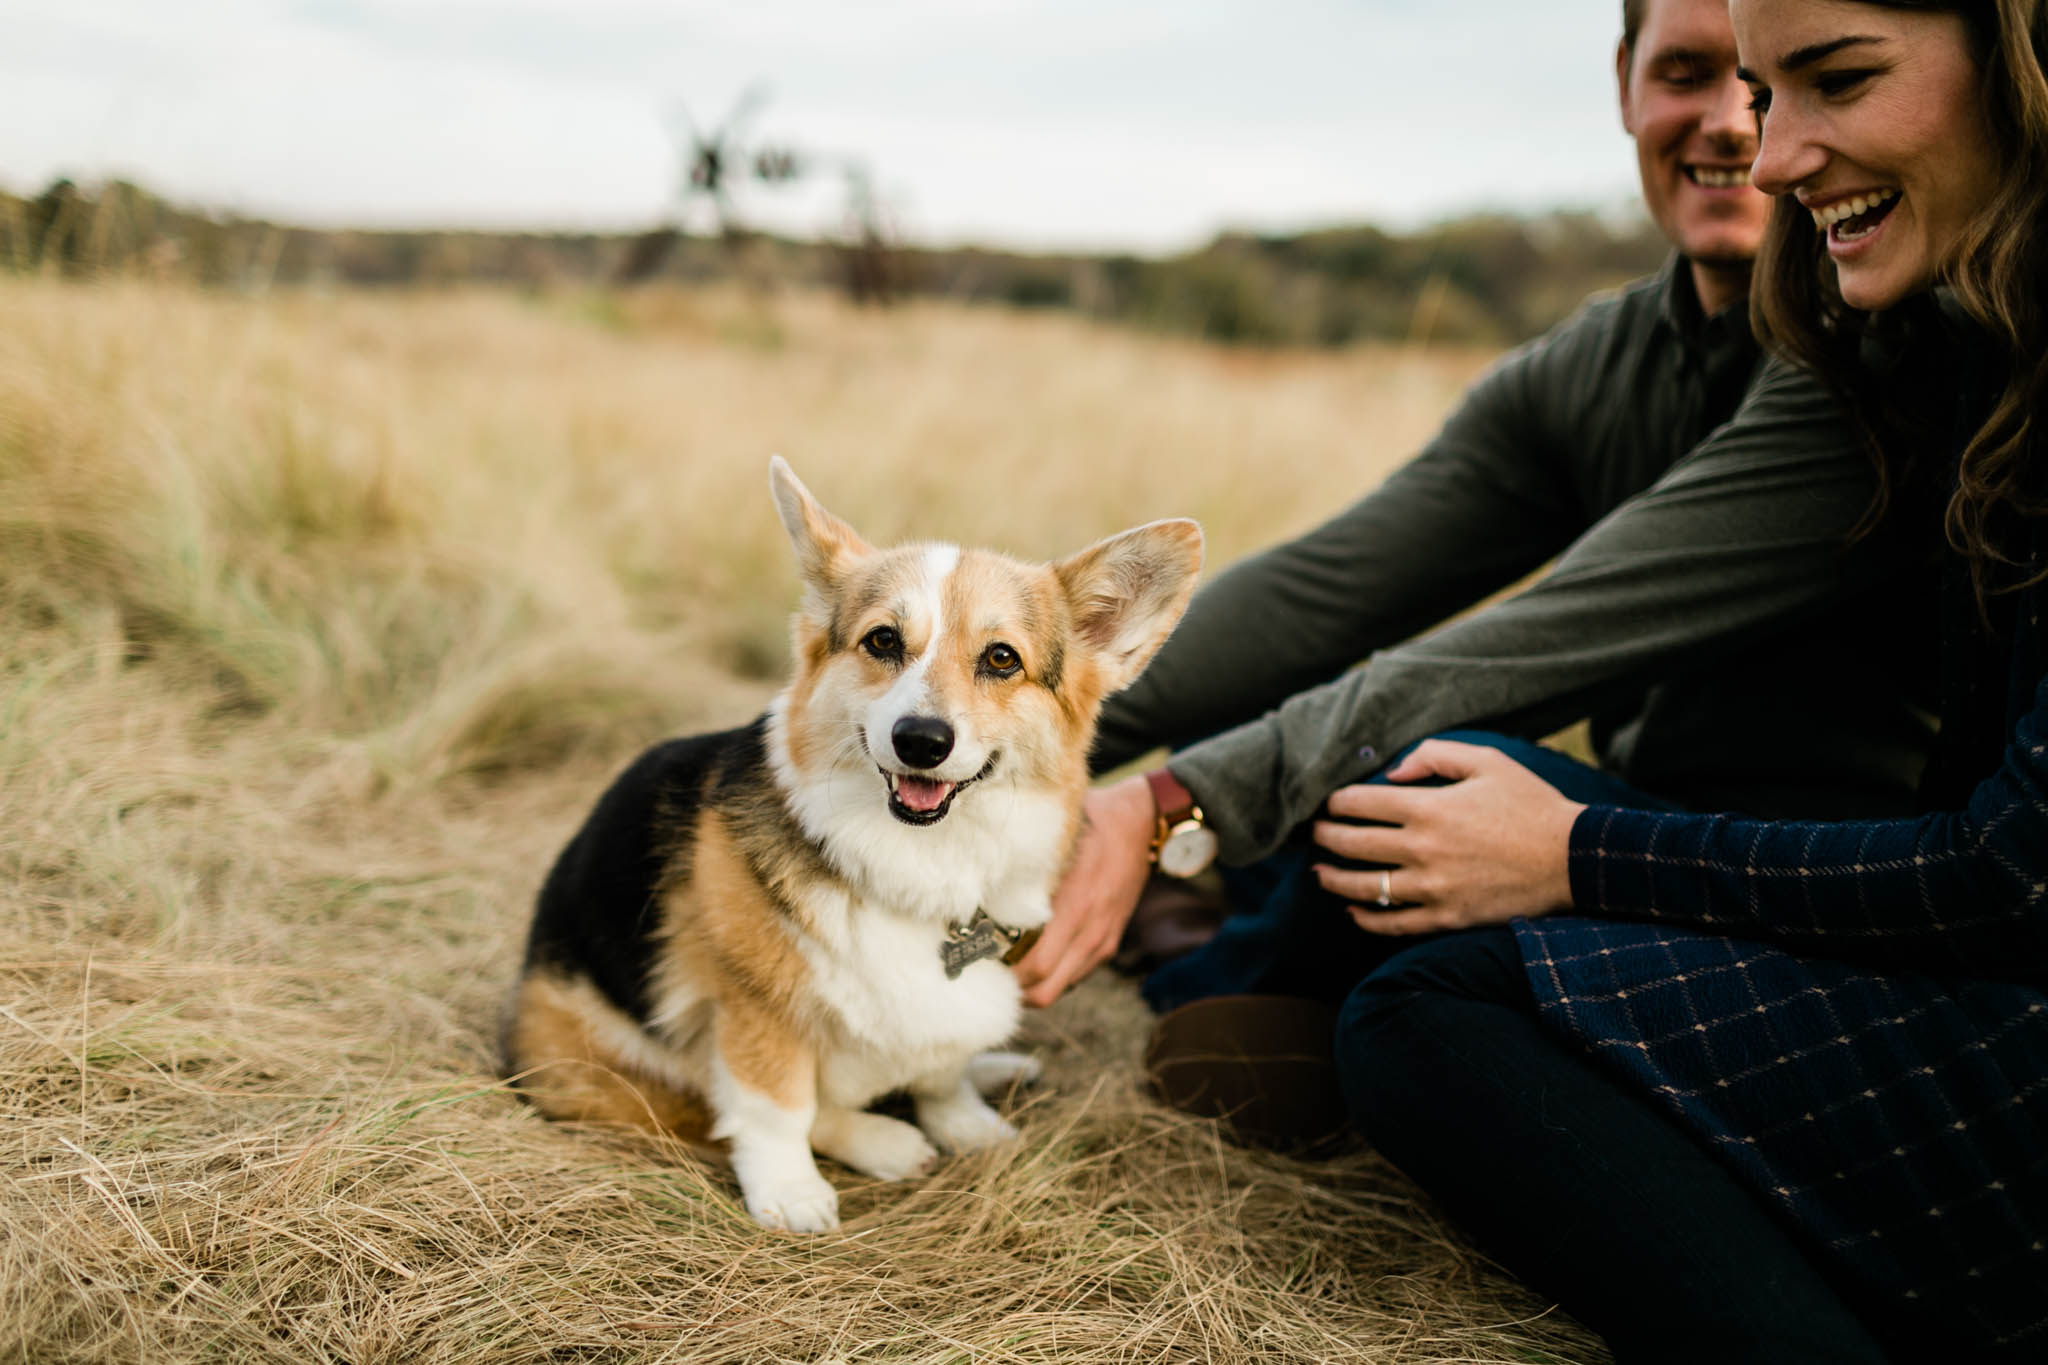 Cute photo of corgi smiling at camera | Raleigh Pet Photographer | By G. Lin Photography